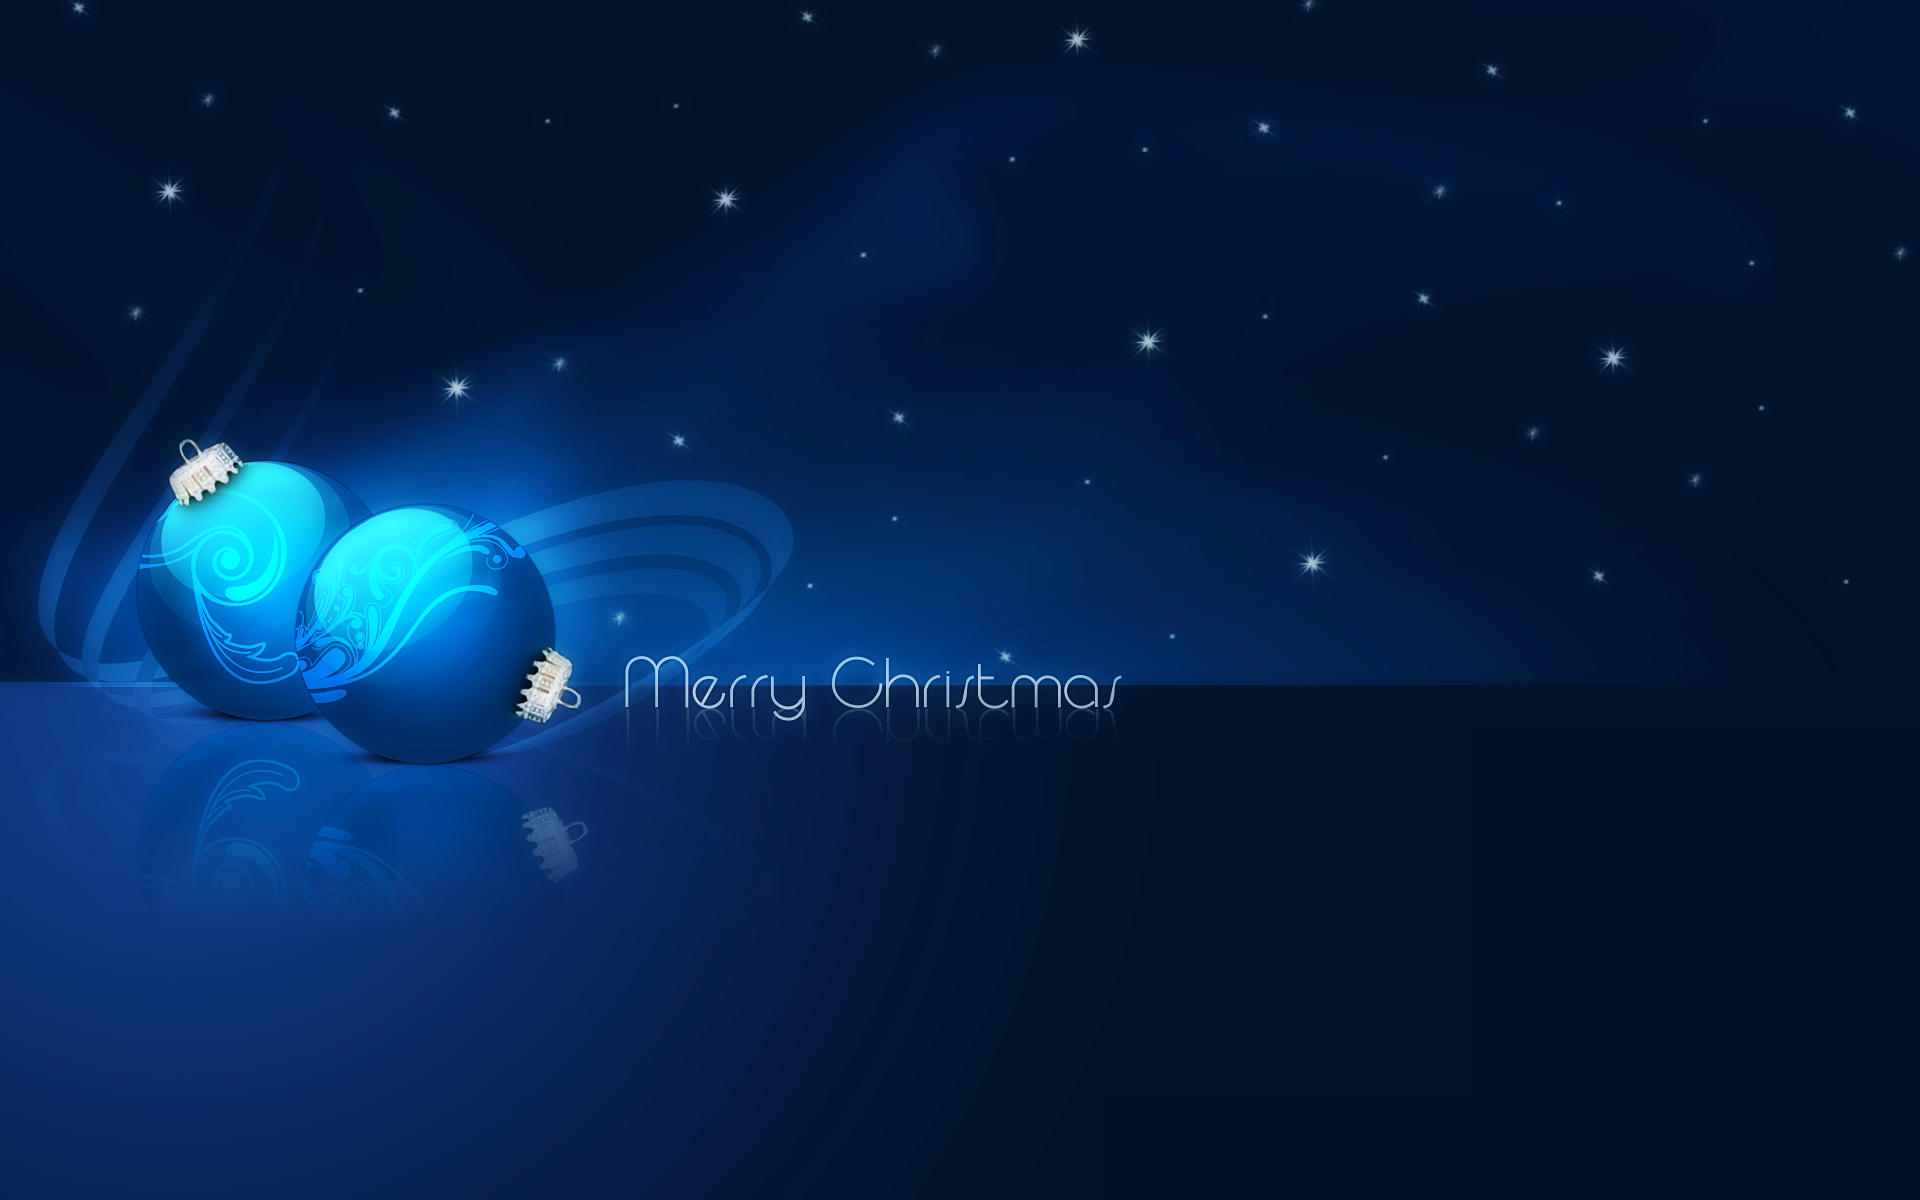 Merry Christmas II Widescreen by DigitalPhenom